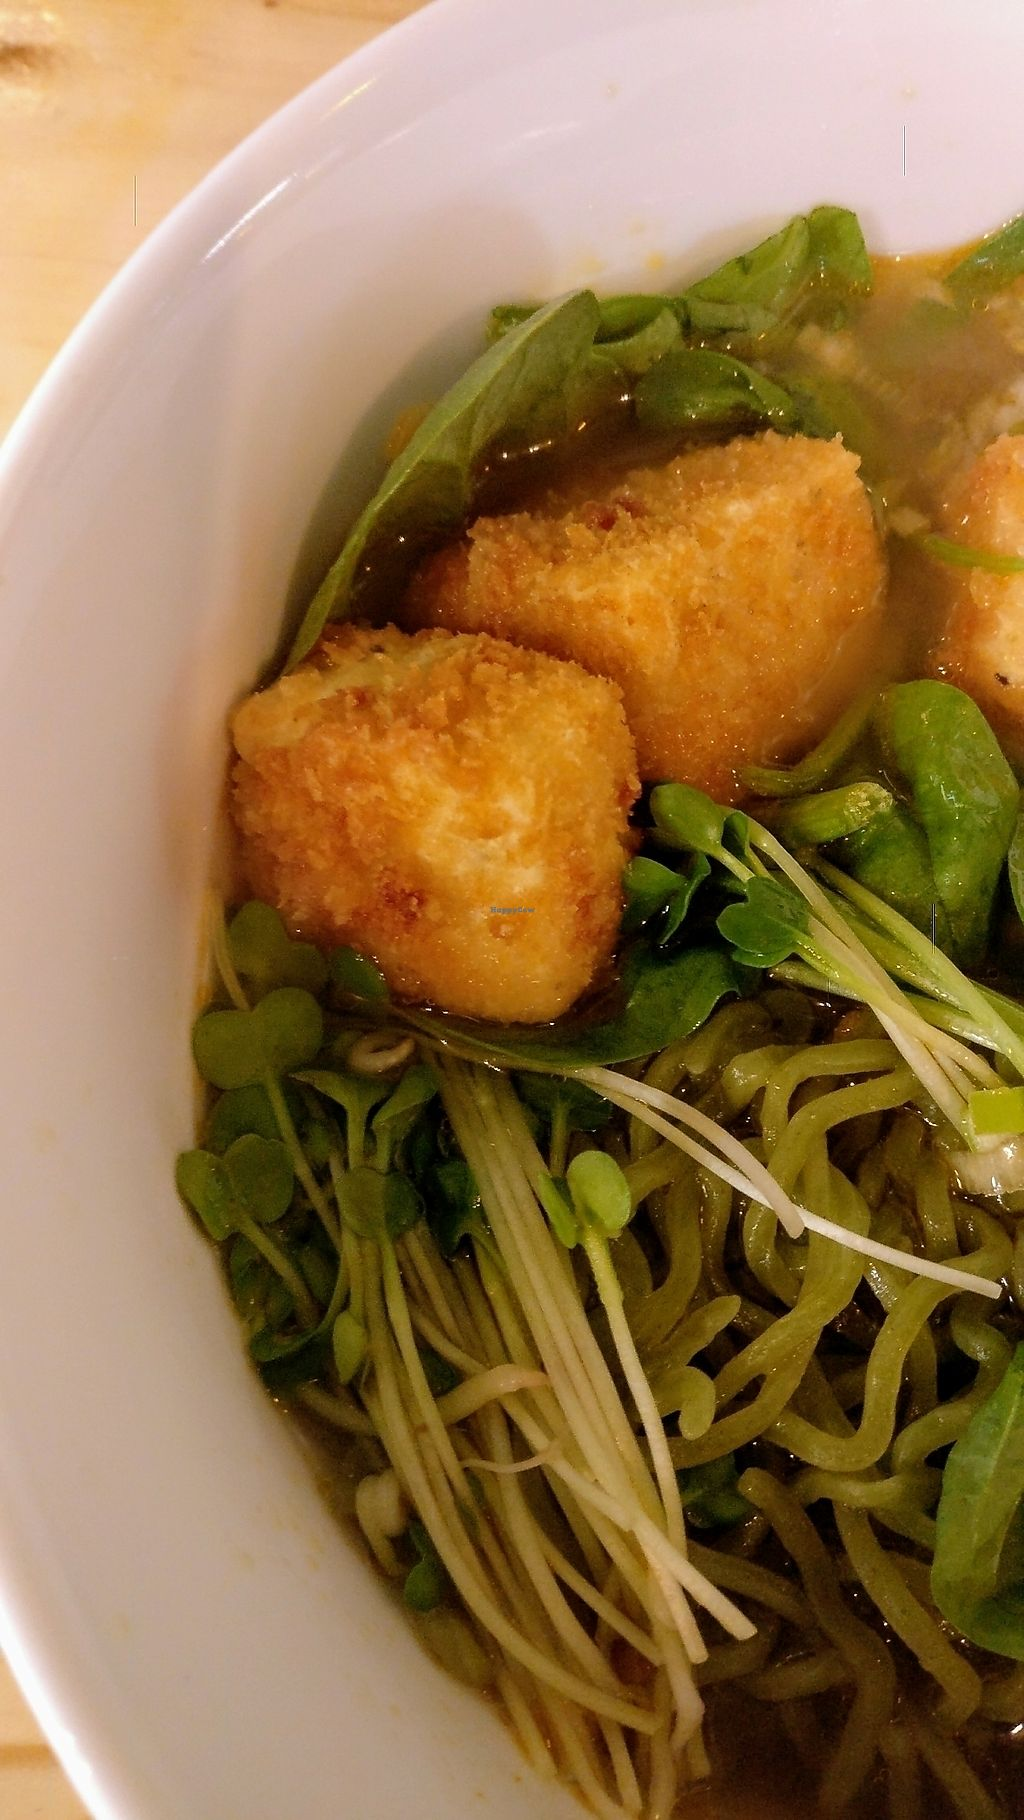 """Photo of Ramen Haus  by <a href=""""/members/profile/Nogd"""">Nogd</a> <br/>Panko Tofu <br/> August 21, 2017  - <a href='/contact/abuse/image/99156/295285'>Report</a>"""